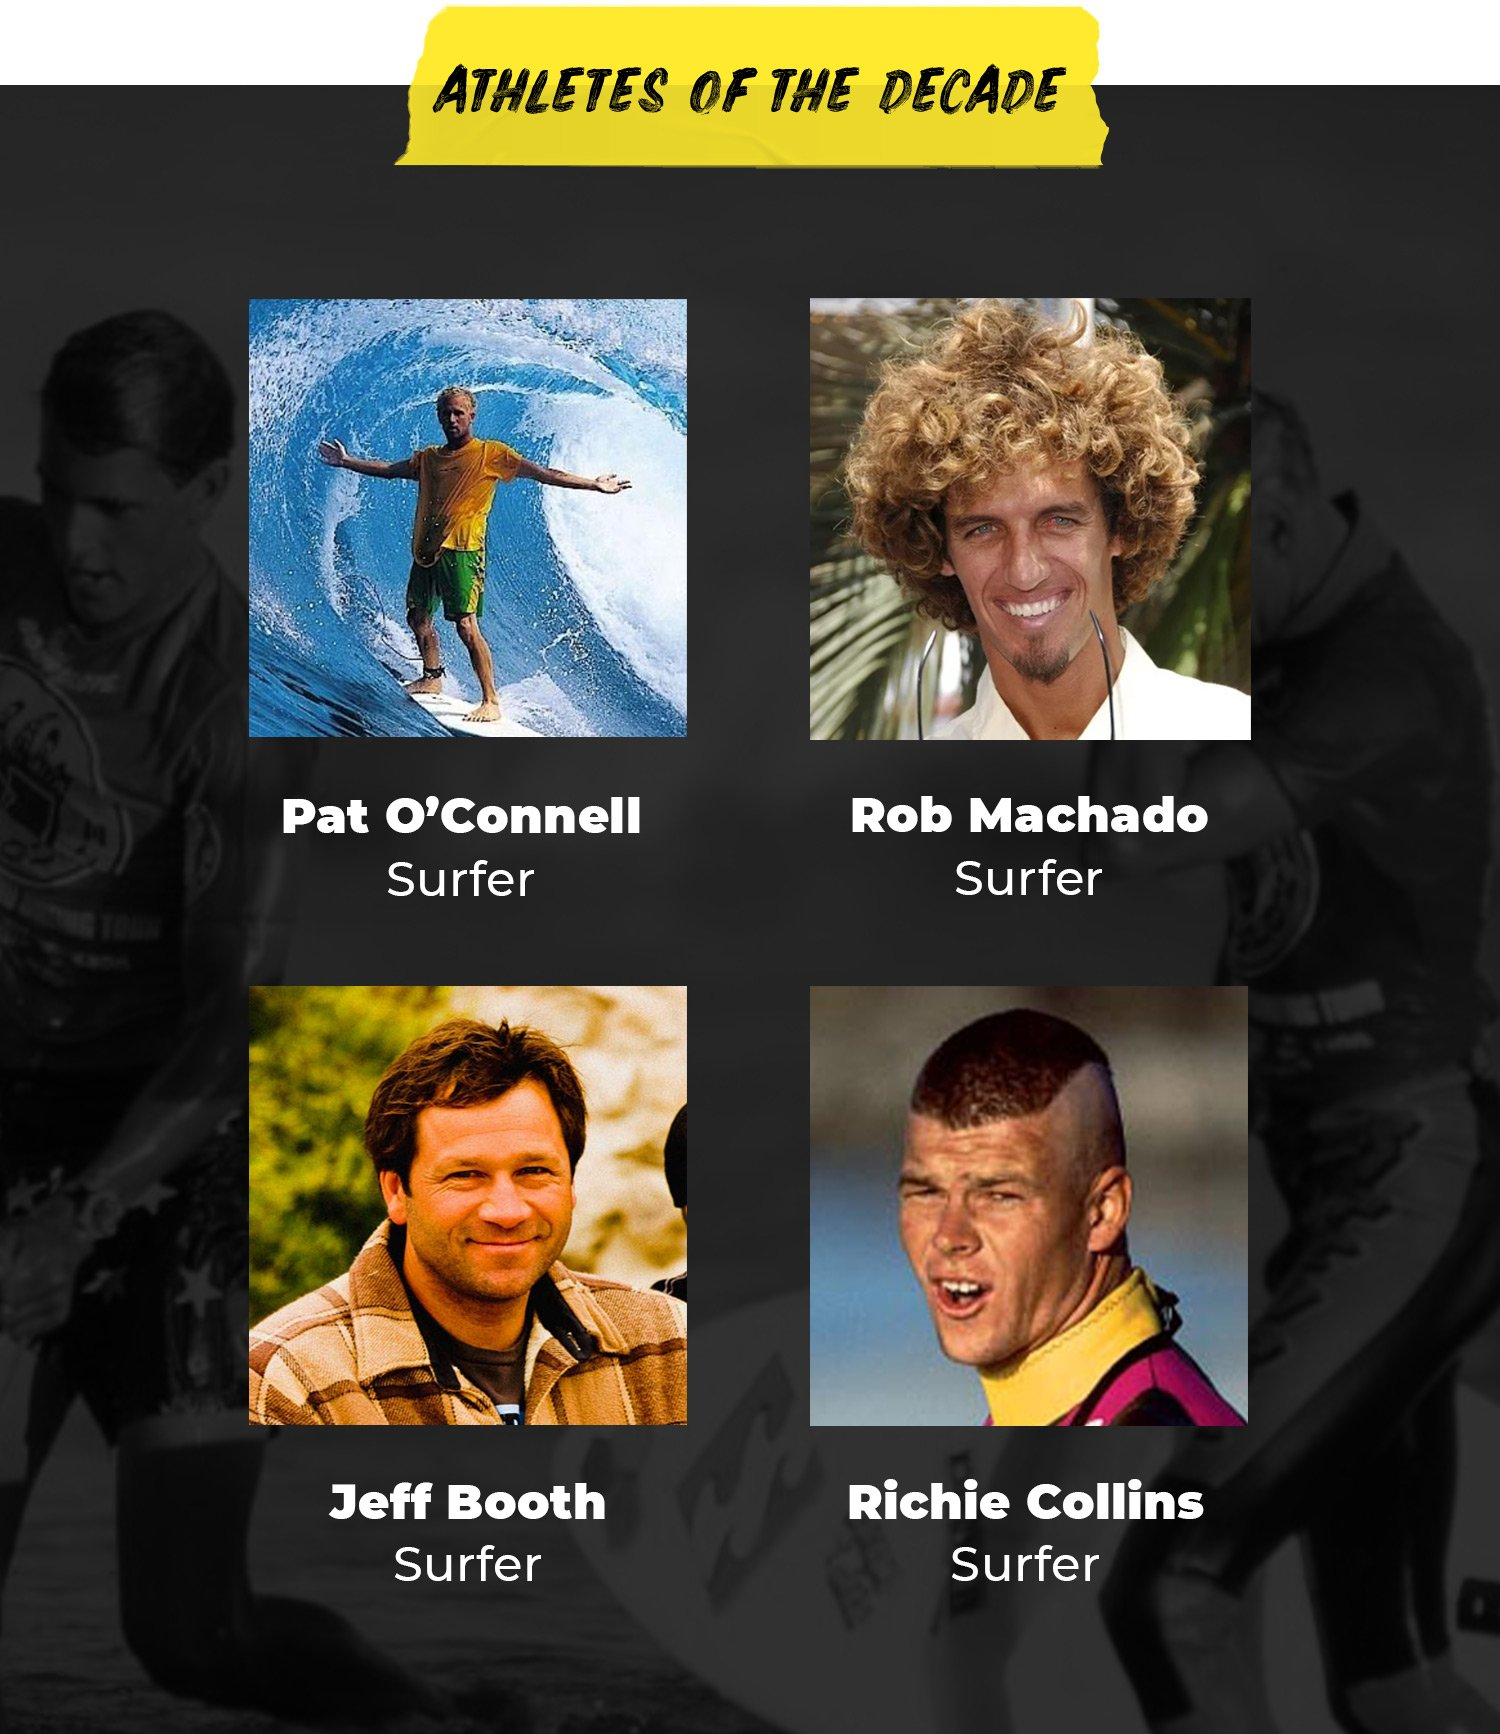 Athletes of the Decade | Pat O'Connell, Surfer | Rob Machado, Surfer | Jeff Booth, Surfer | Richie Collins, Surfer